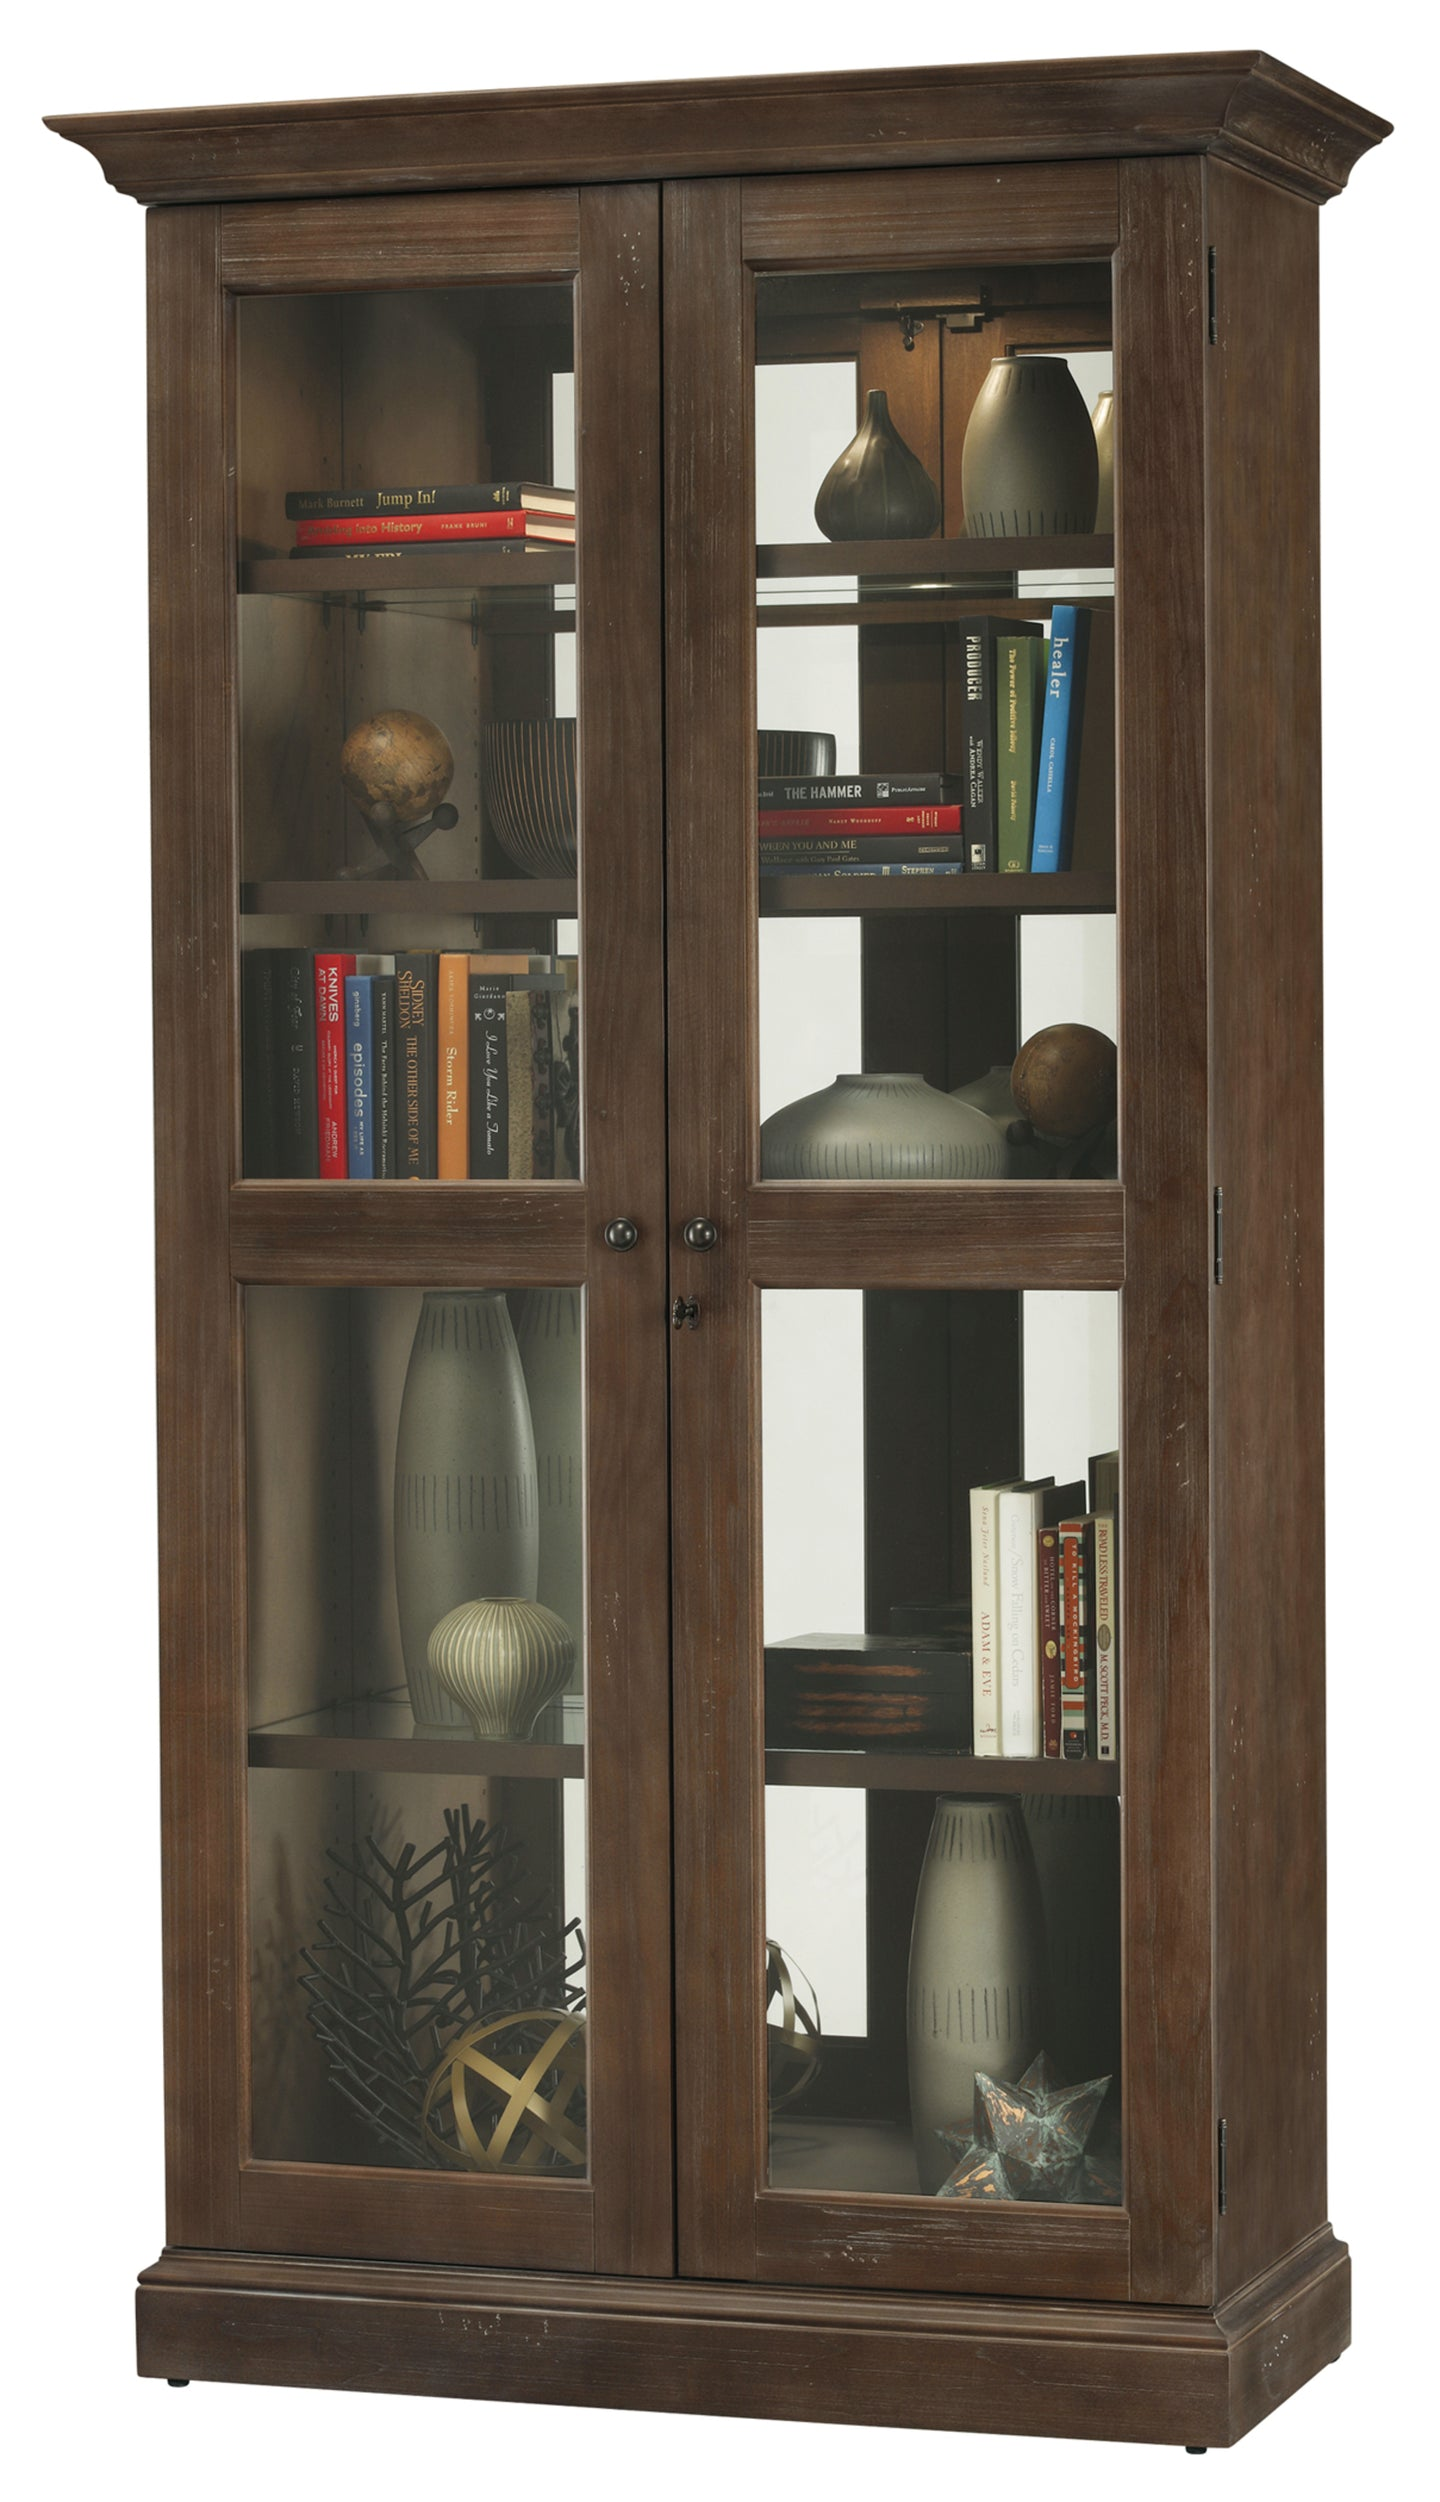 Howard Miller Lennon Display Cabinet 670005 - Curios And More